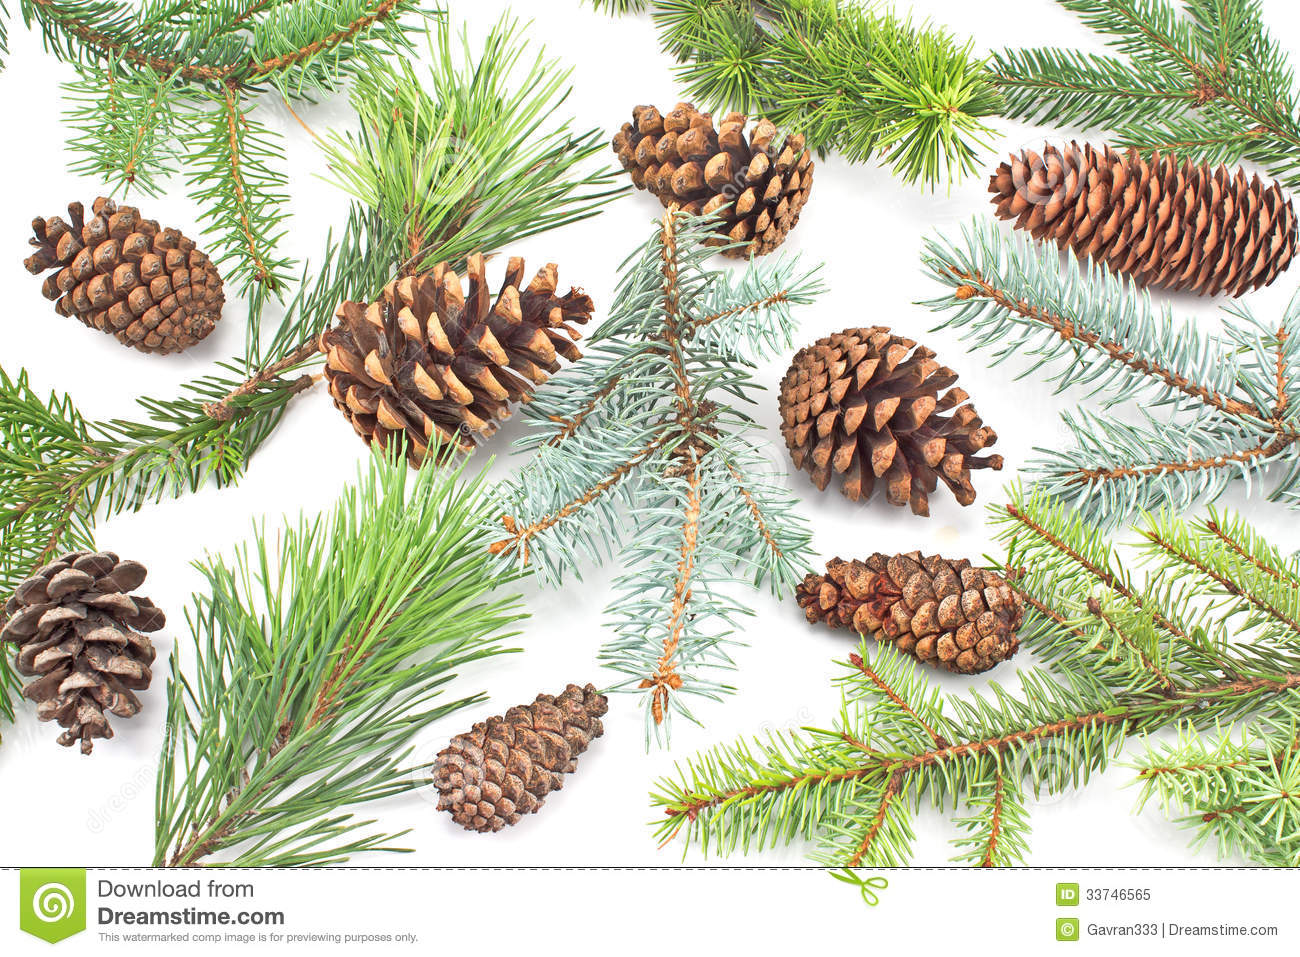 Pine cones and needles royalty free stock photo image 33746565